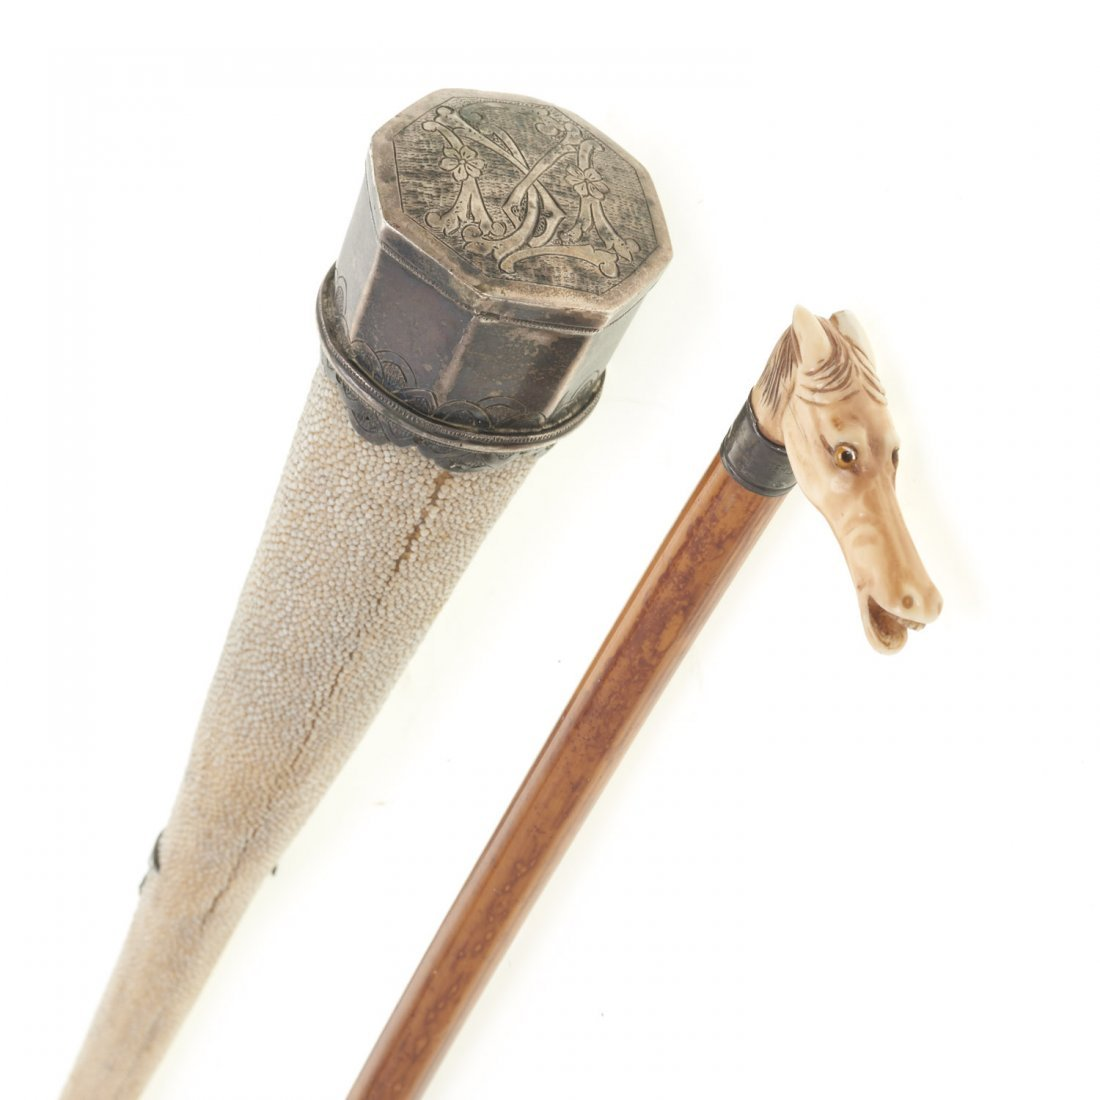 (2) Antique shagreen and hardwood riding crops - 8